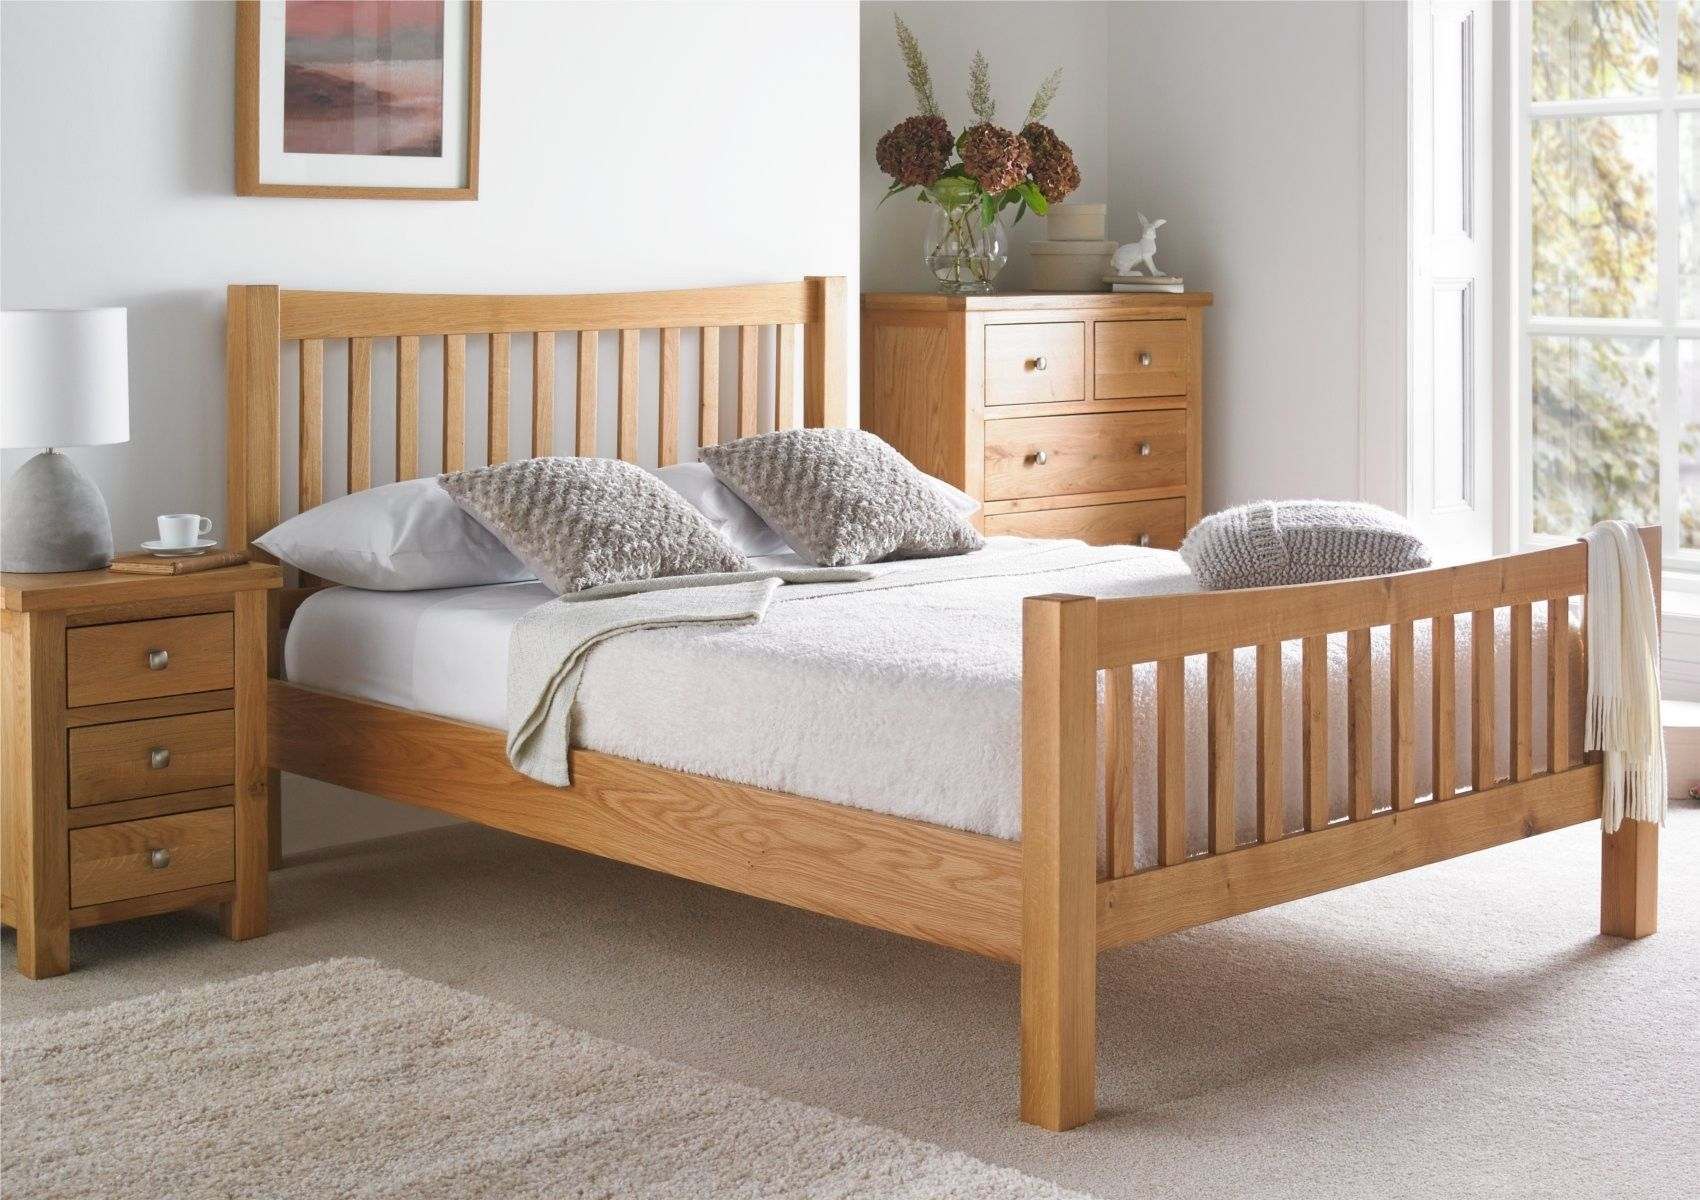 . Dorset Oak Bed Frame   Light wood   Wooden Beds   Beds   Home